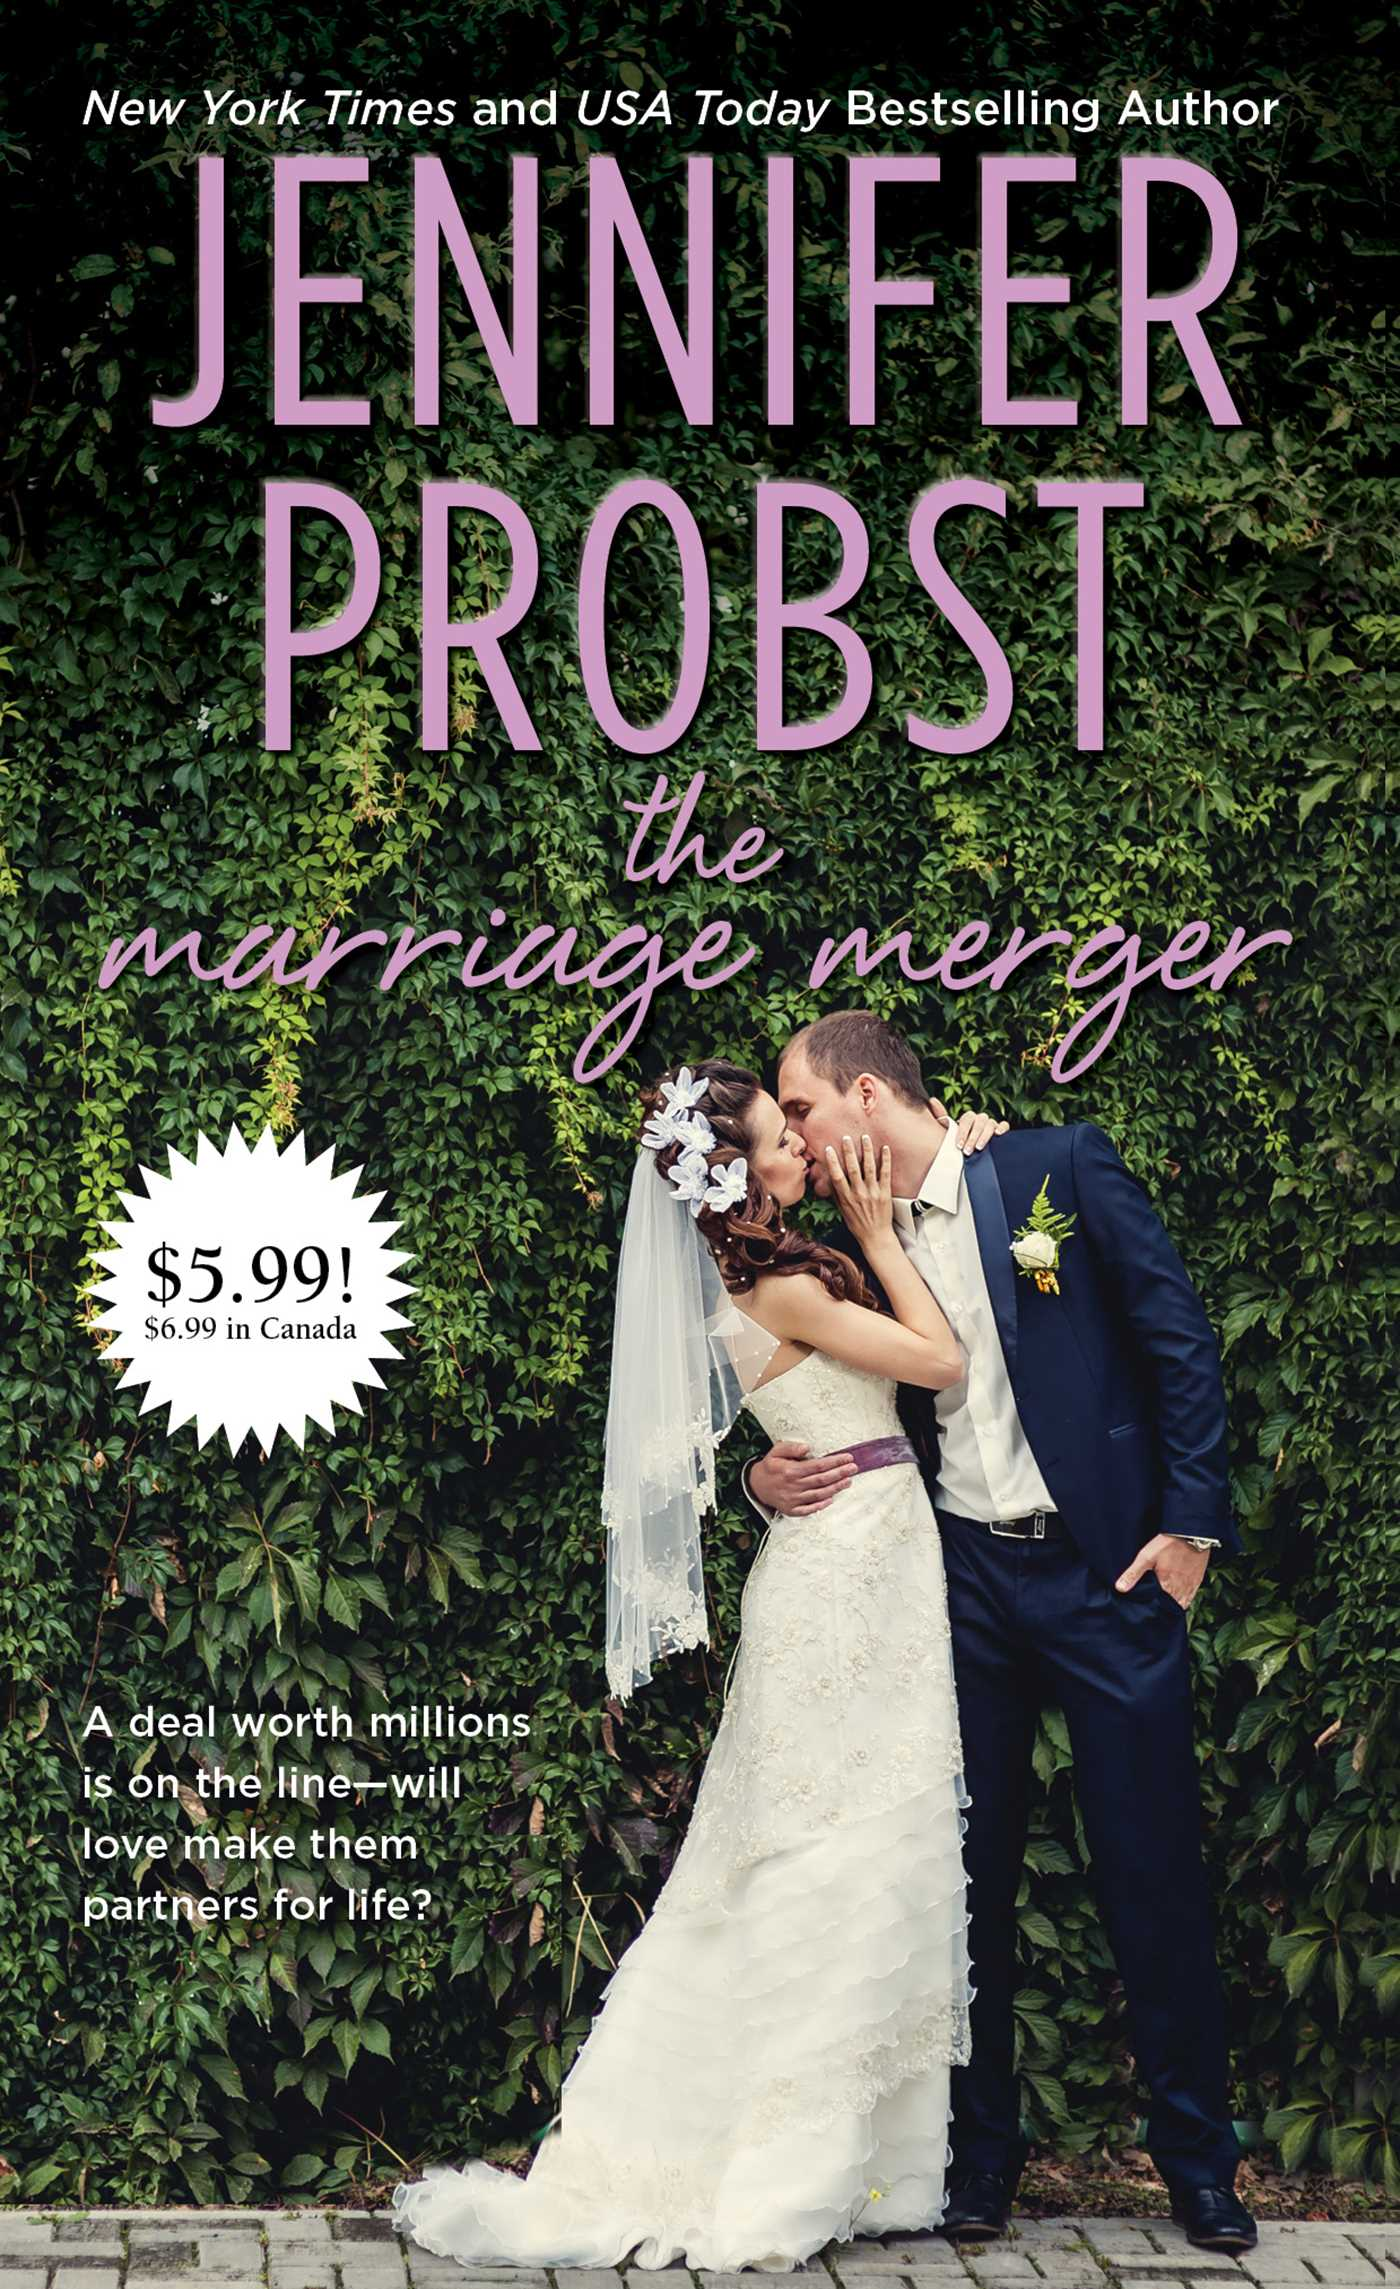 Jennifer Probst book cover